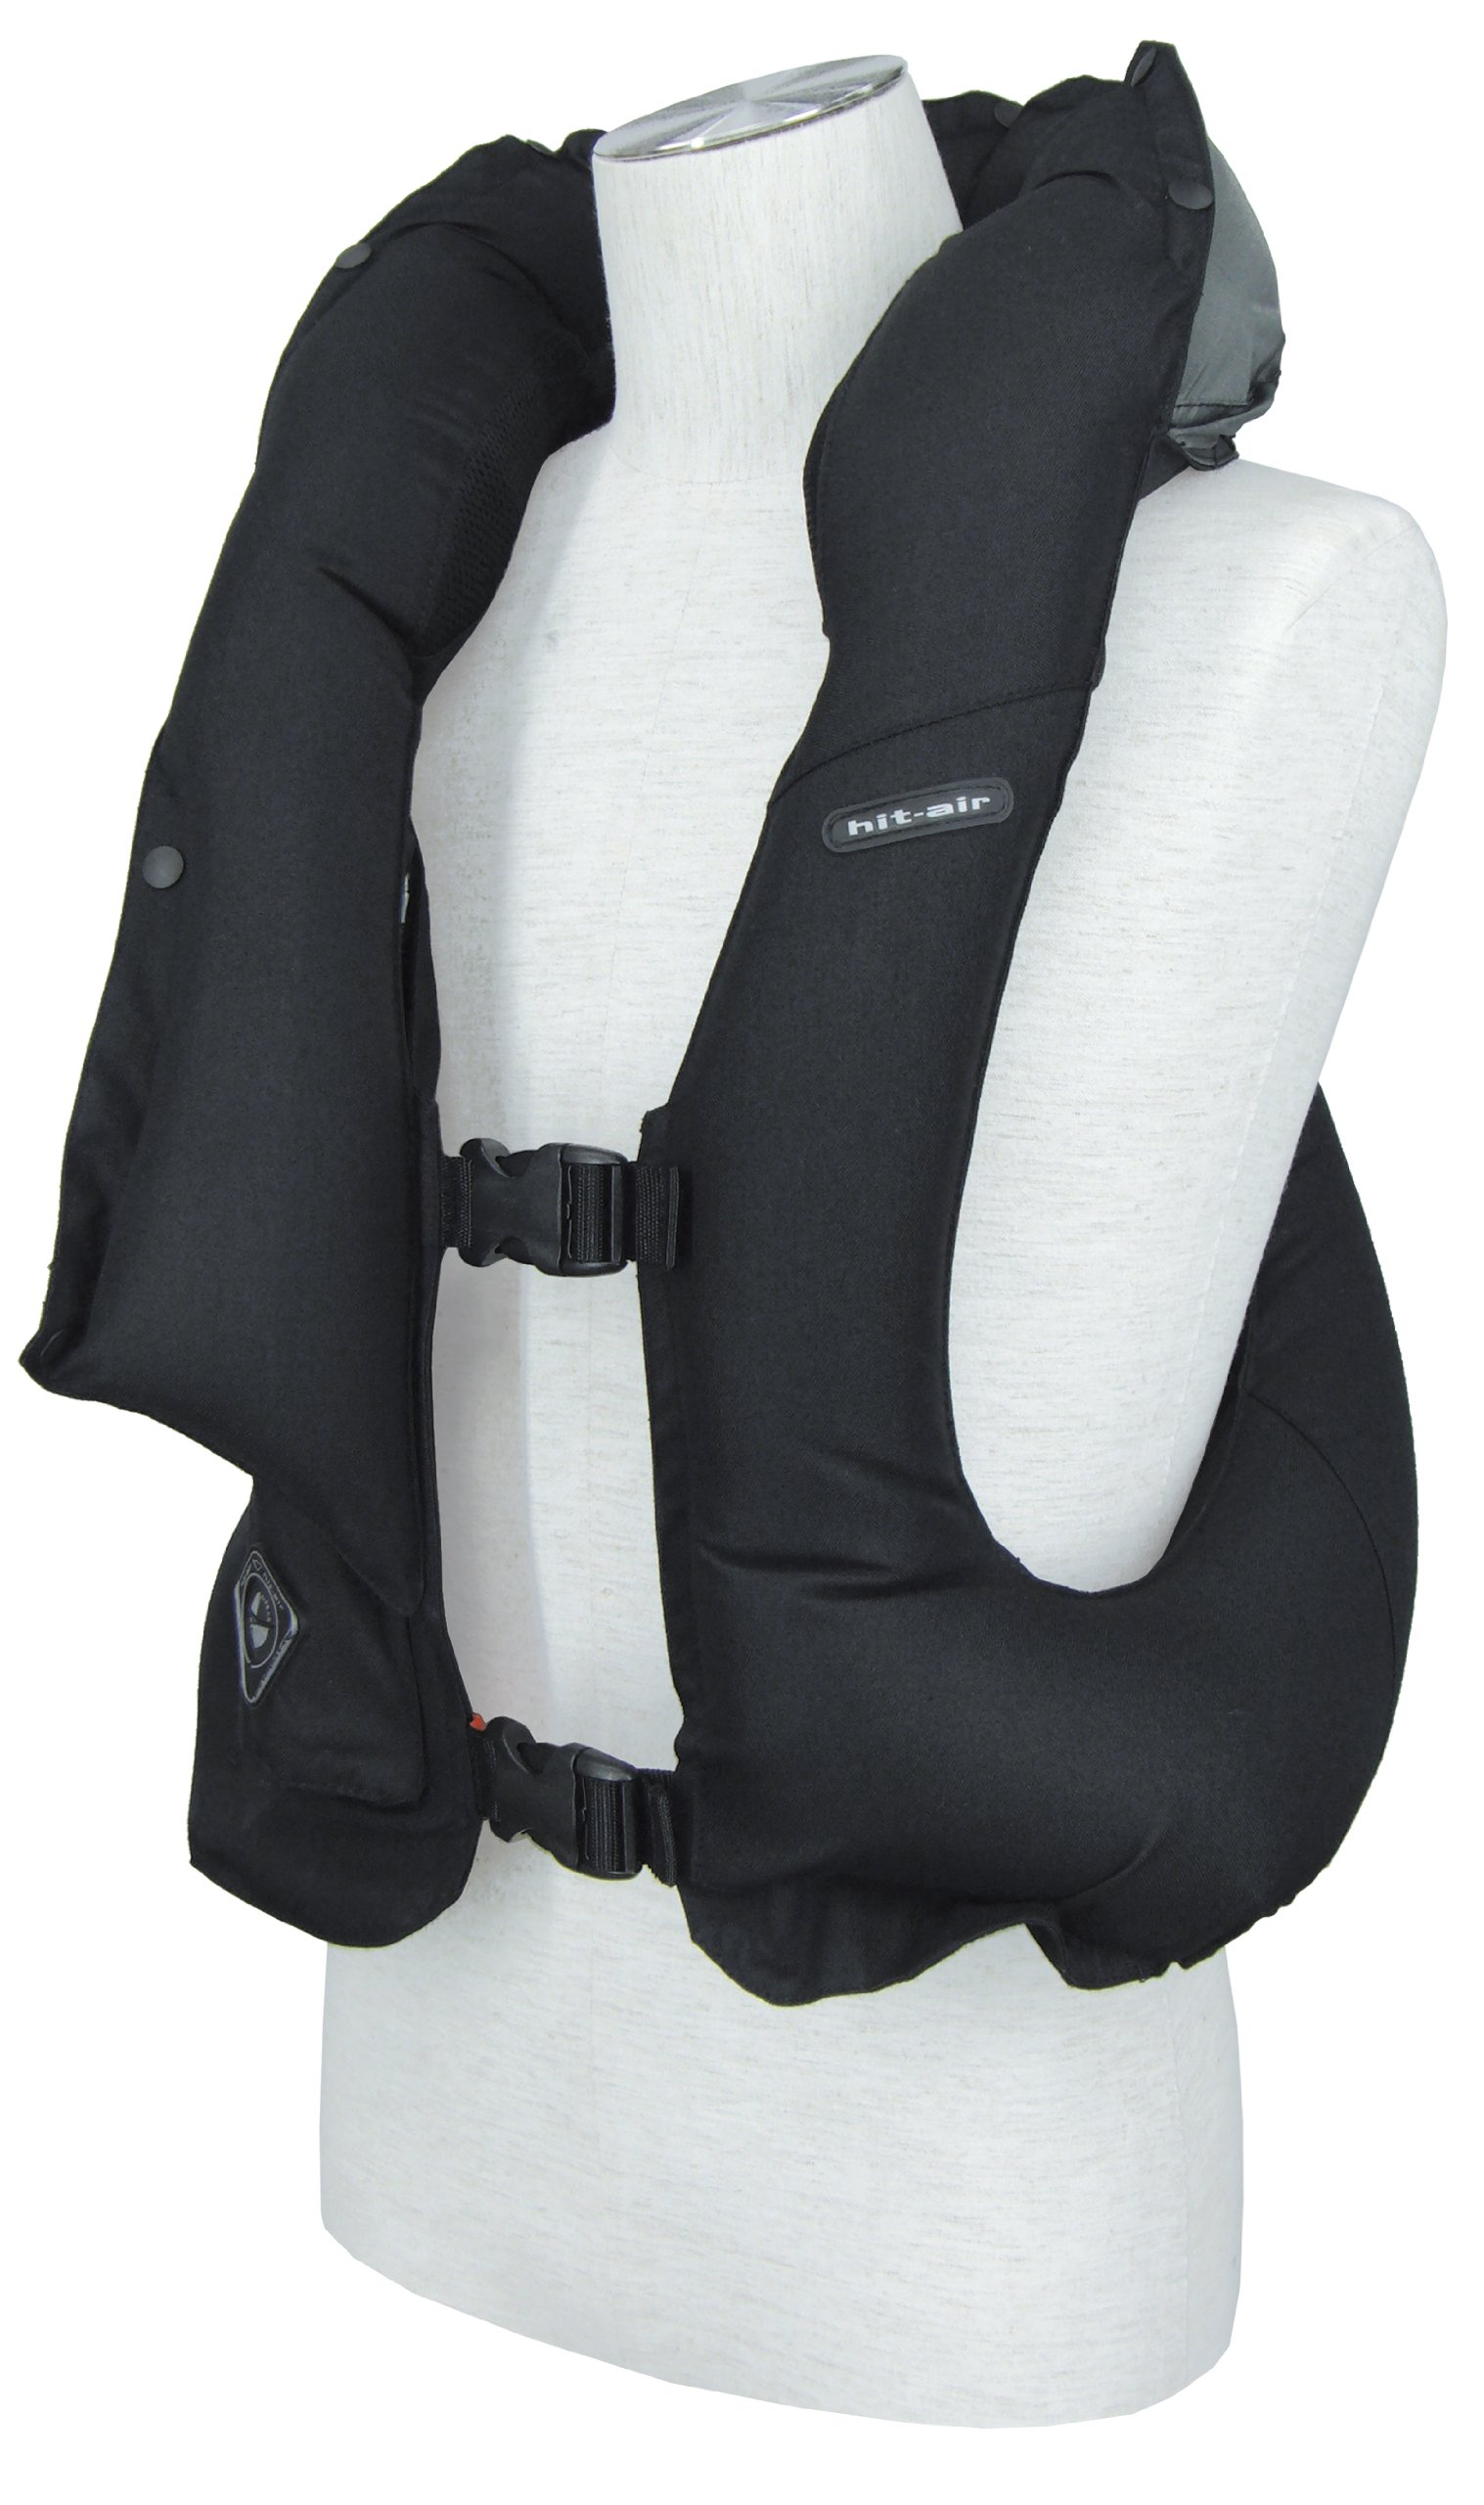 Hit-Air inflatable air vest ''LV'' model in Black Size is Adjustable. One Size Fits Adults M-L